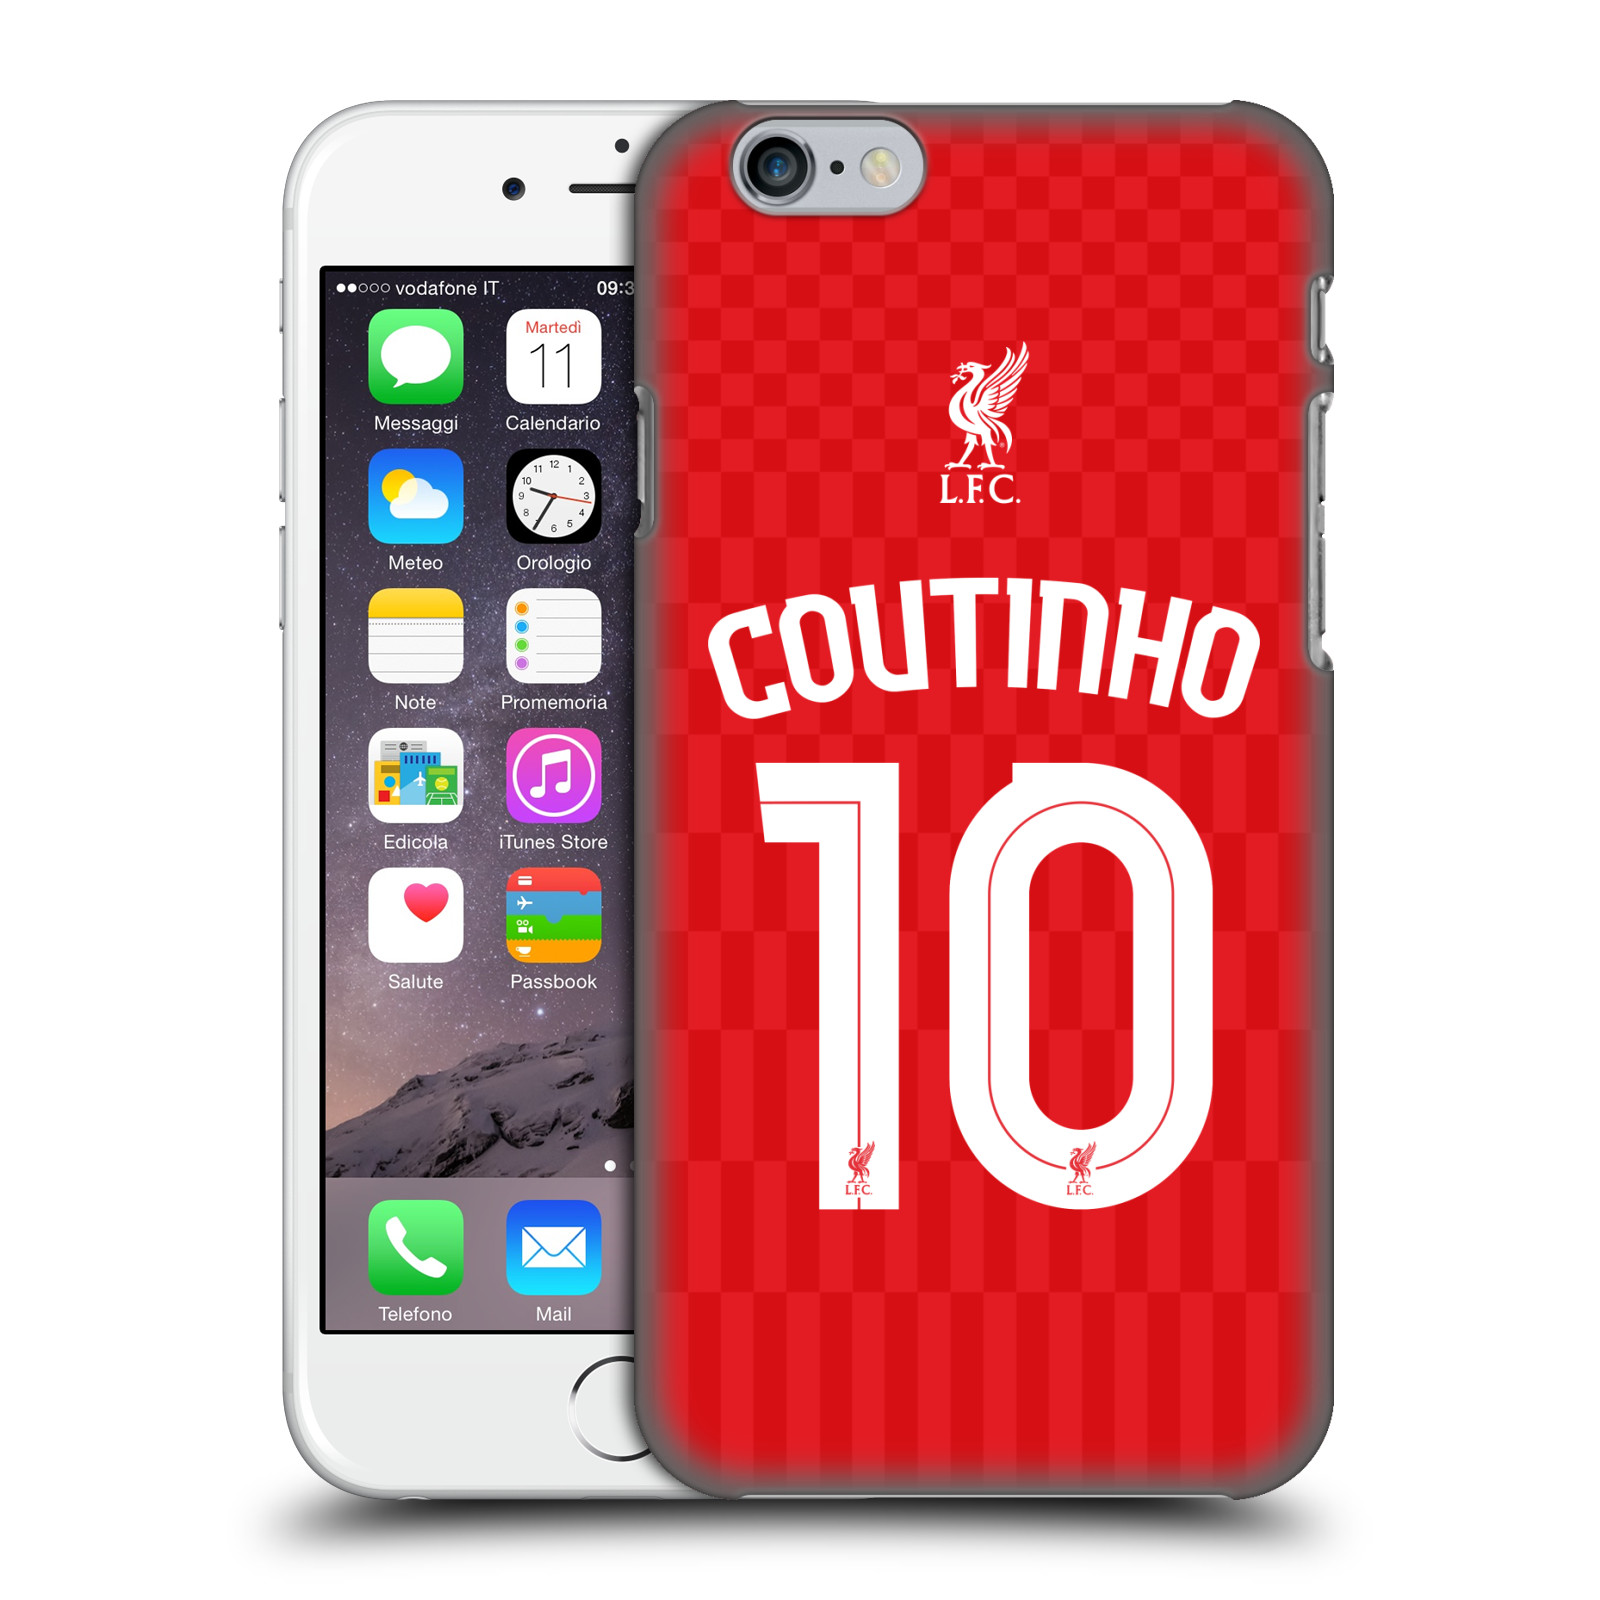 Liverpool FC LFC Shirt 2015/16-Home Shirt Red Coutinho